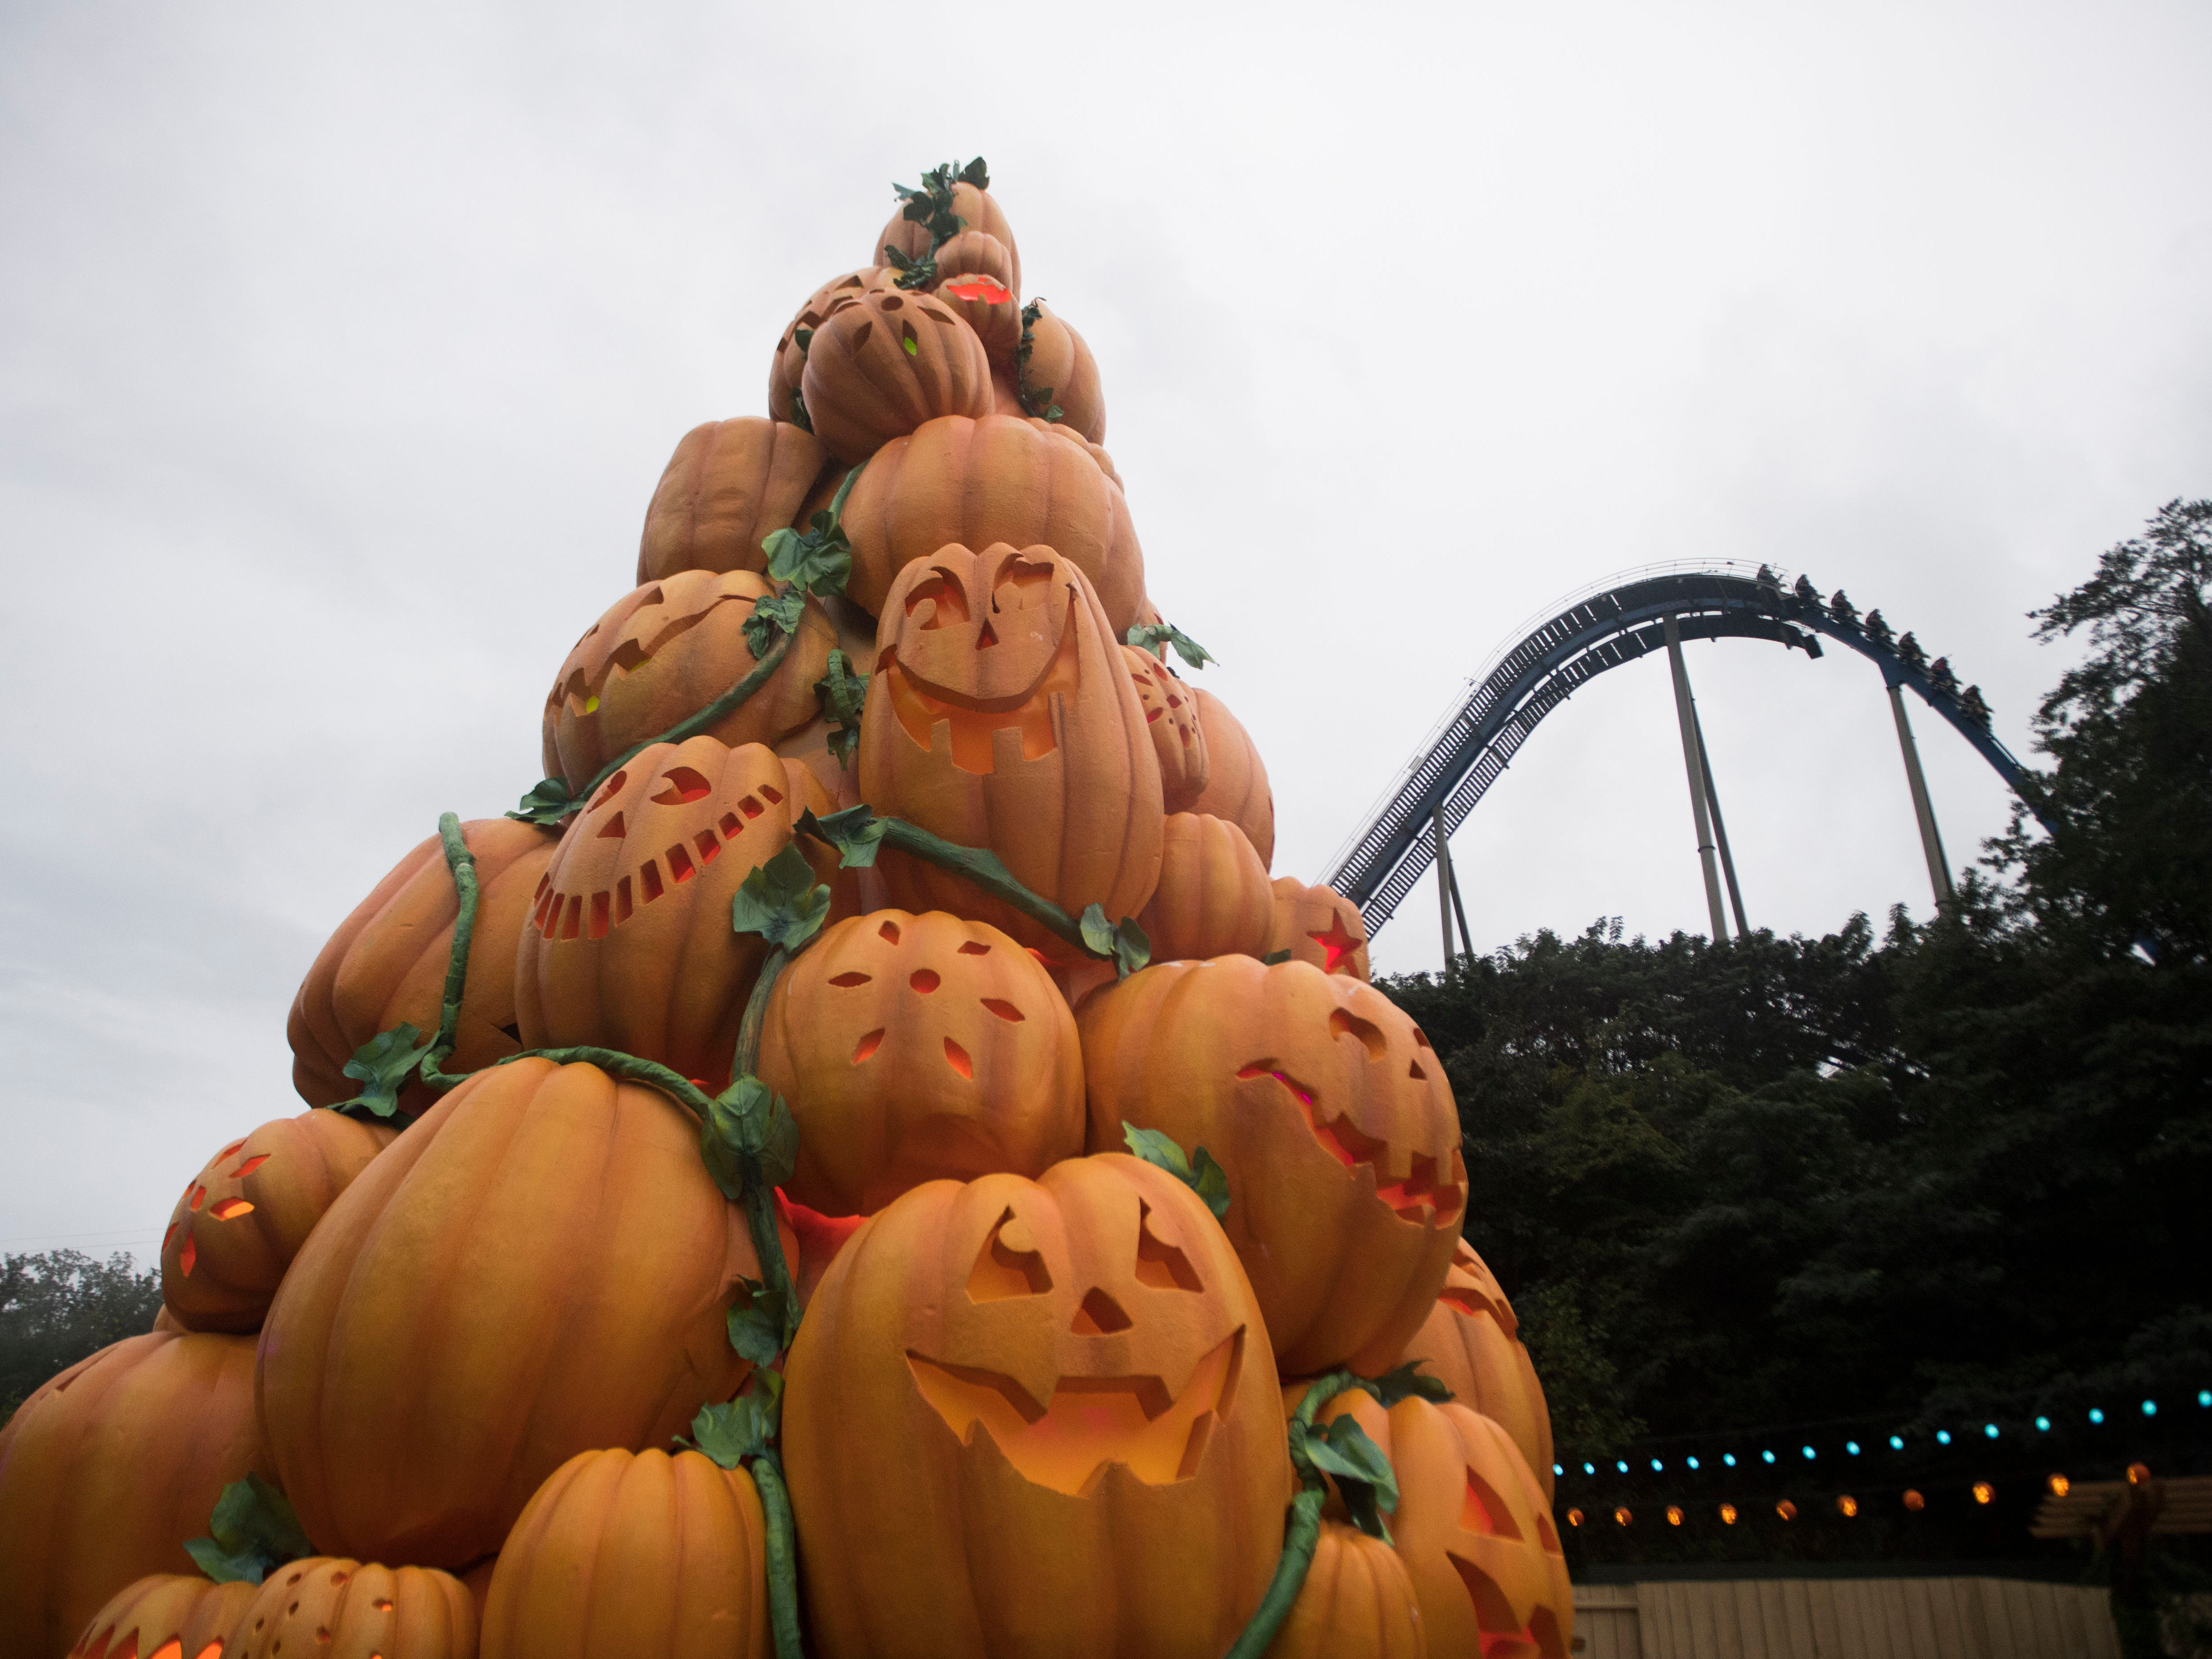 The Wild Eagle coaster at Dollywood runs in the background while a 40-foot pumpkin tower looms near it at Dollywood's second Great Pumpkin LumiNights festival in Pigeon Forge, Thursday, Sept. 27, 2018. The festival has doubled in size since last year.